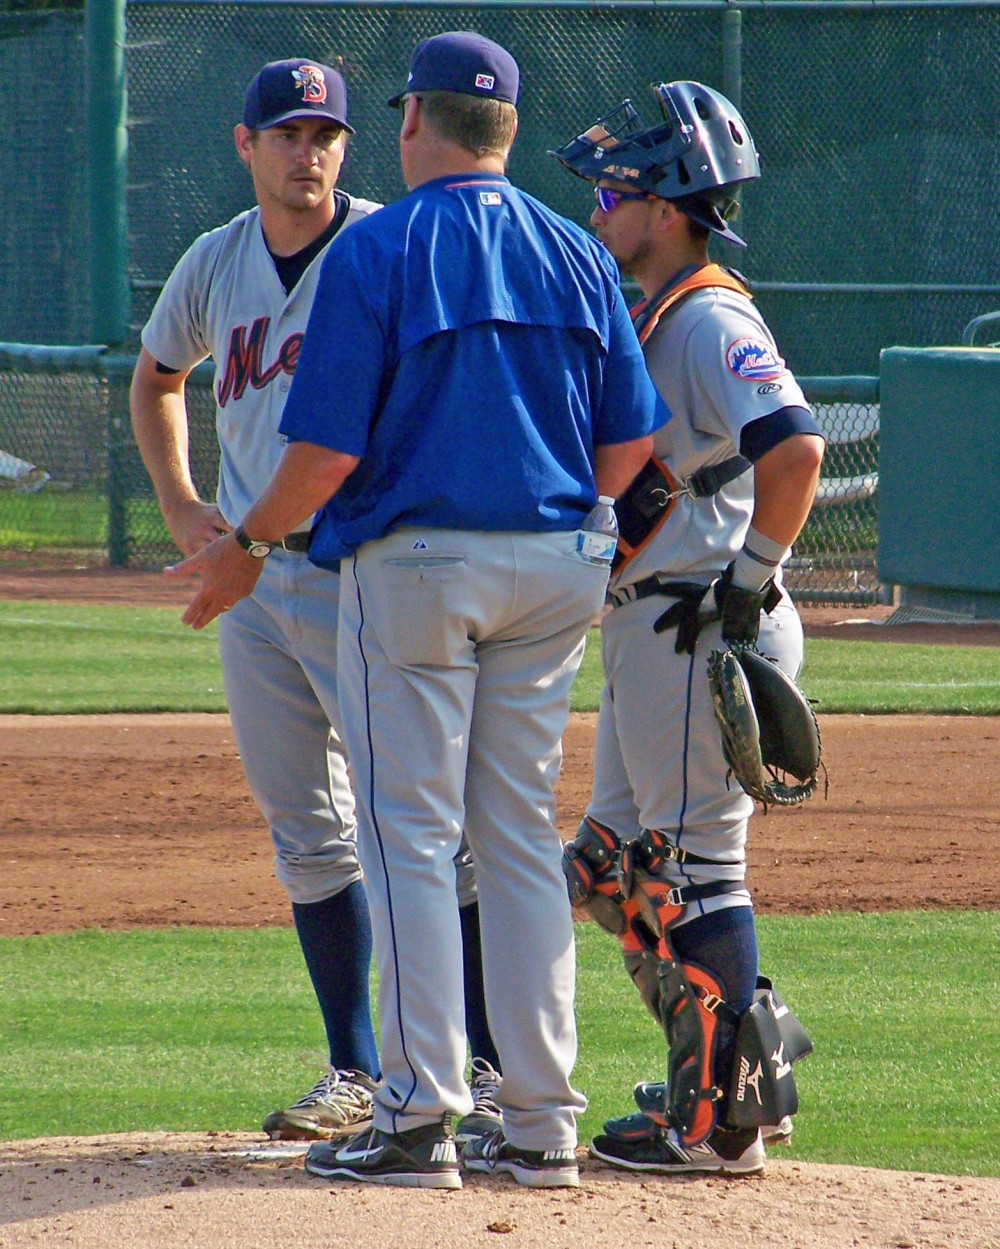 Despite some early struggles, Binghamton Mets pitcher Seth Lugo pitched 7 shutout innings against the Trenton Thunder Sunday (Photo credit: Paul Hadsall)